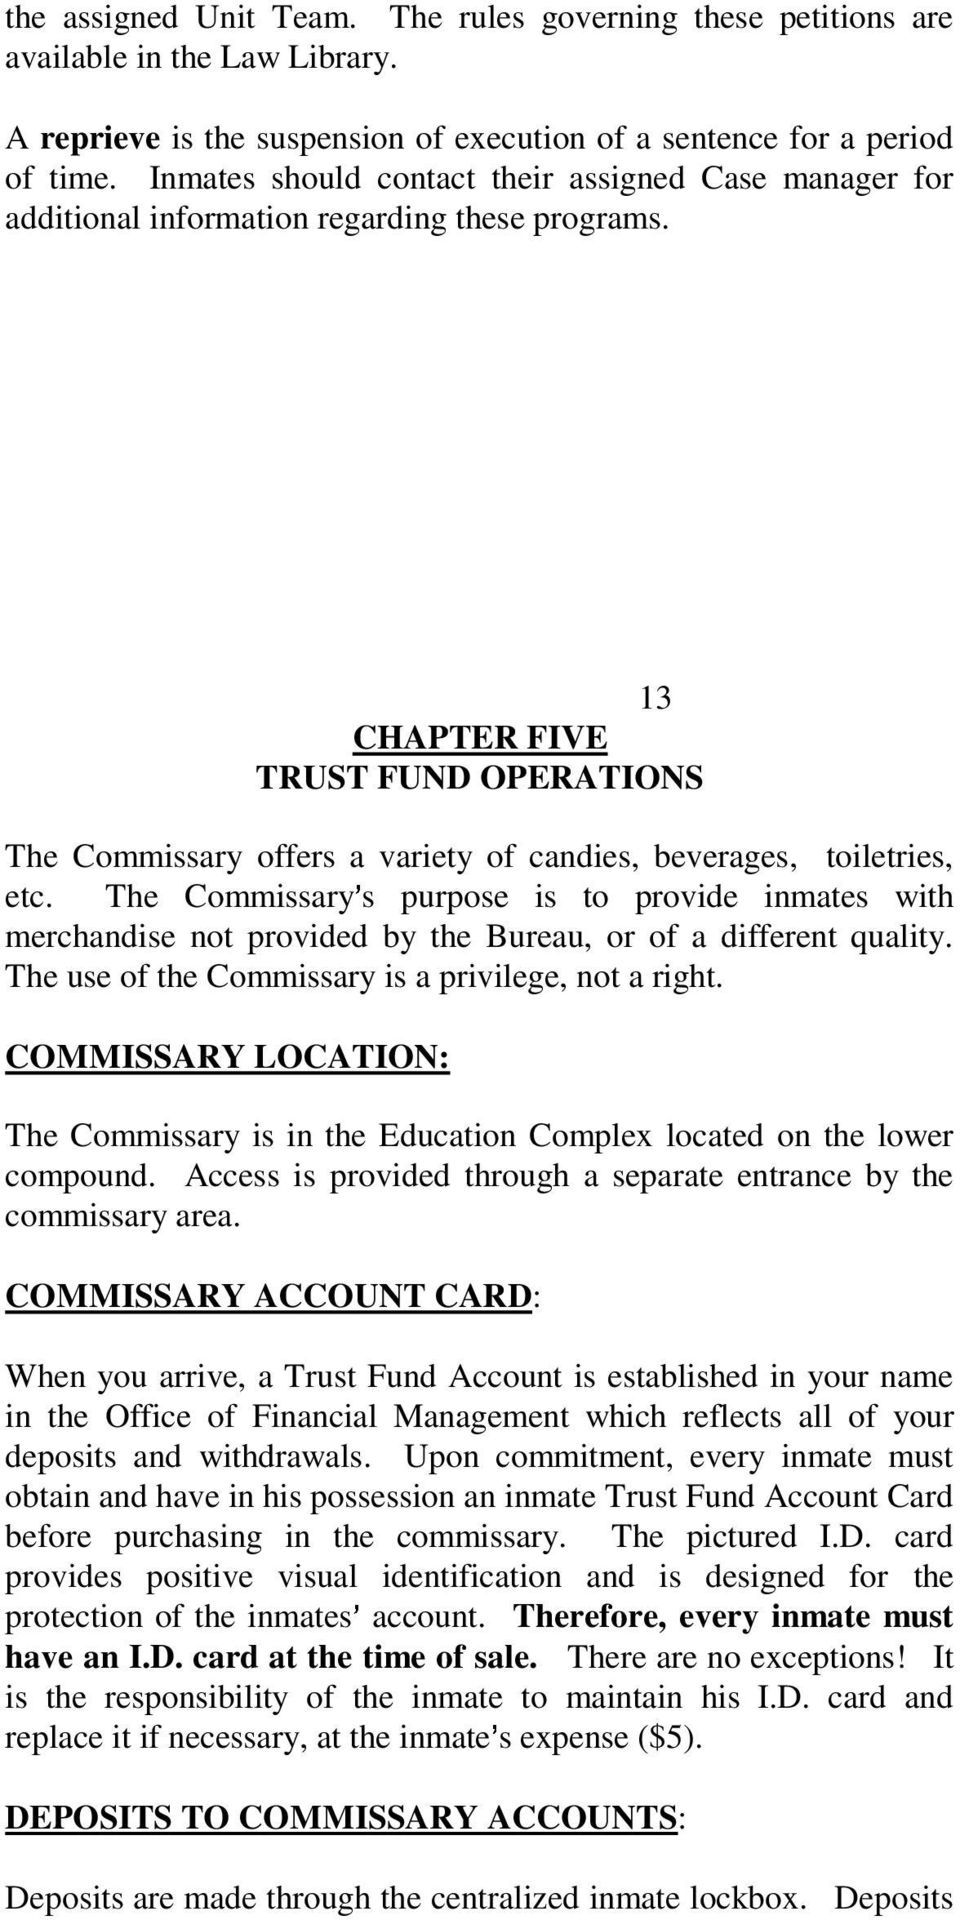 13 CHAPTER FIVE TRUST FUND OPERATIONS The Commissary offers a variety of candies, beverages, toiletries, etc.